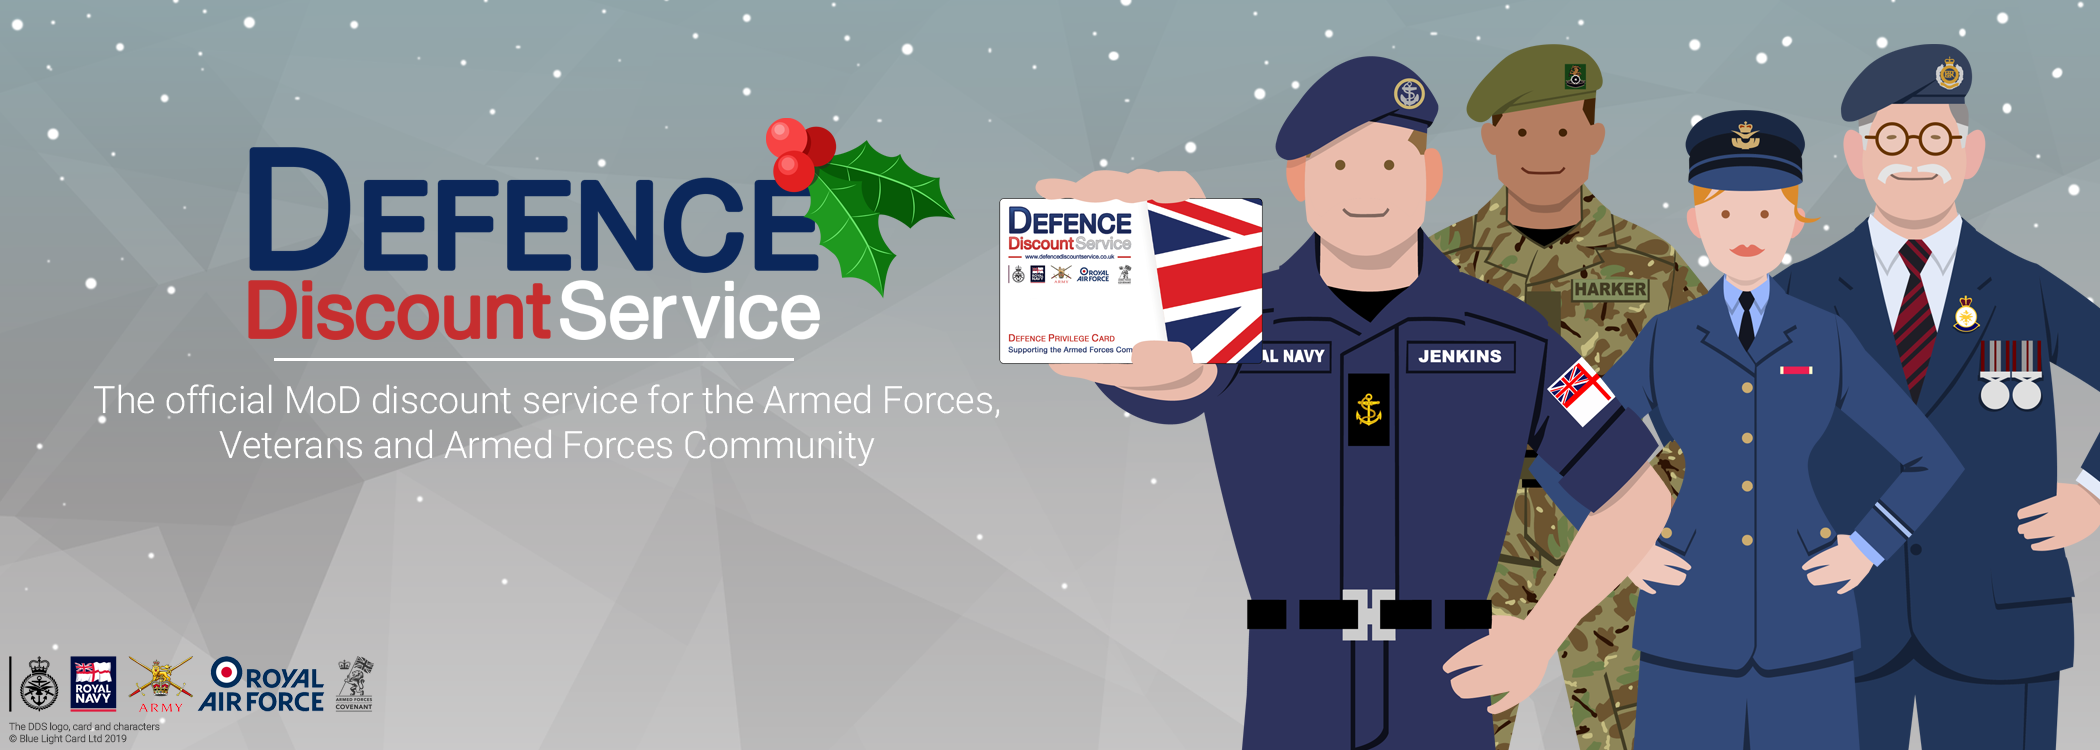 Defence Privilege Card Official Discounts